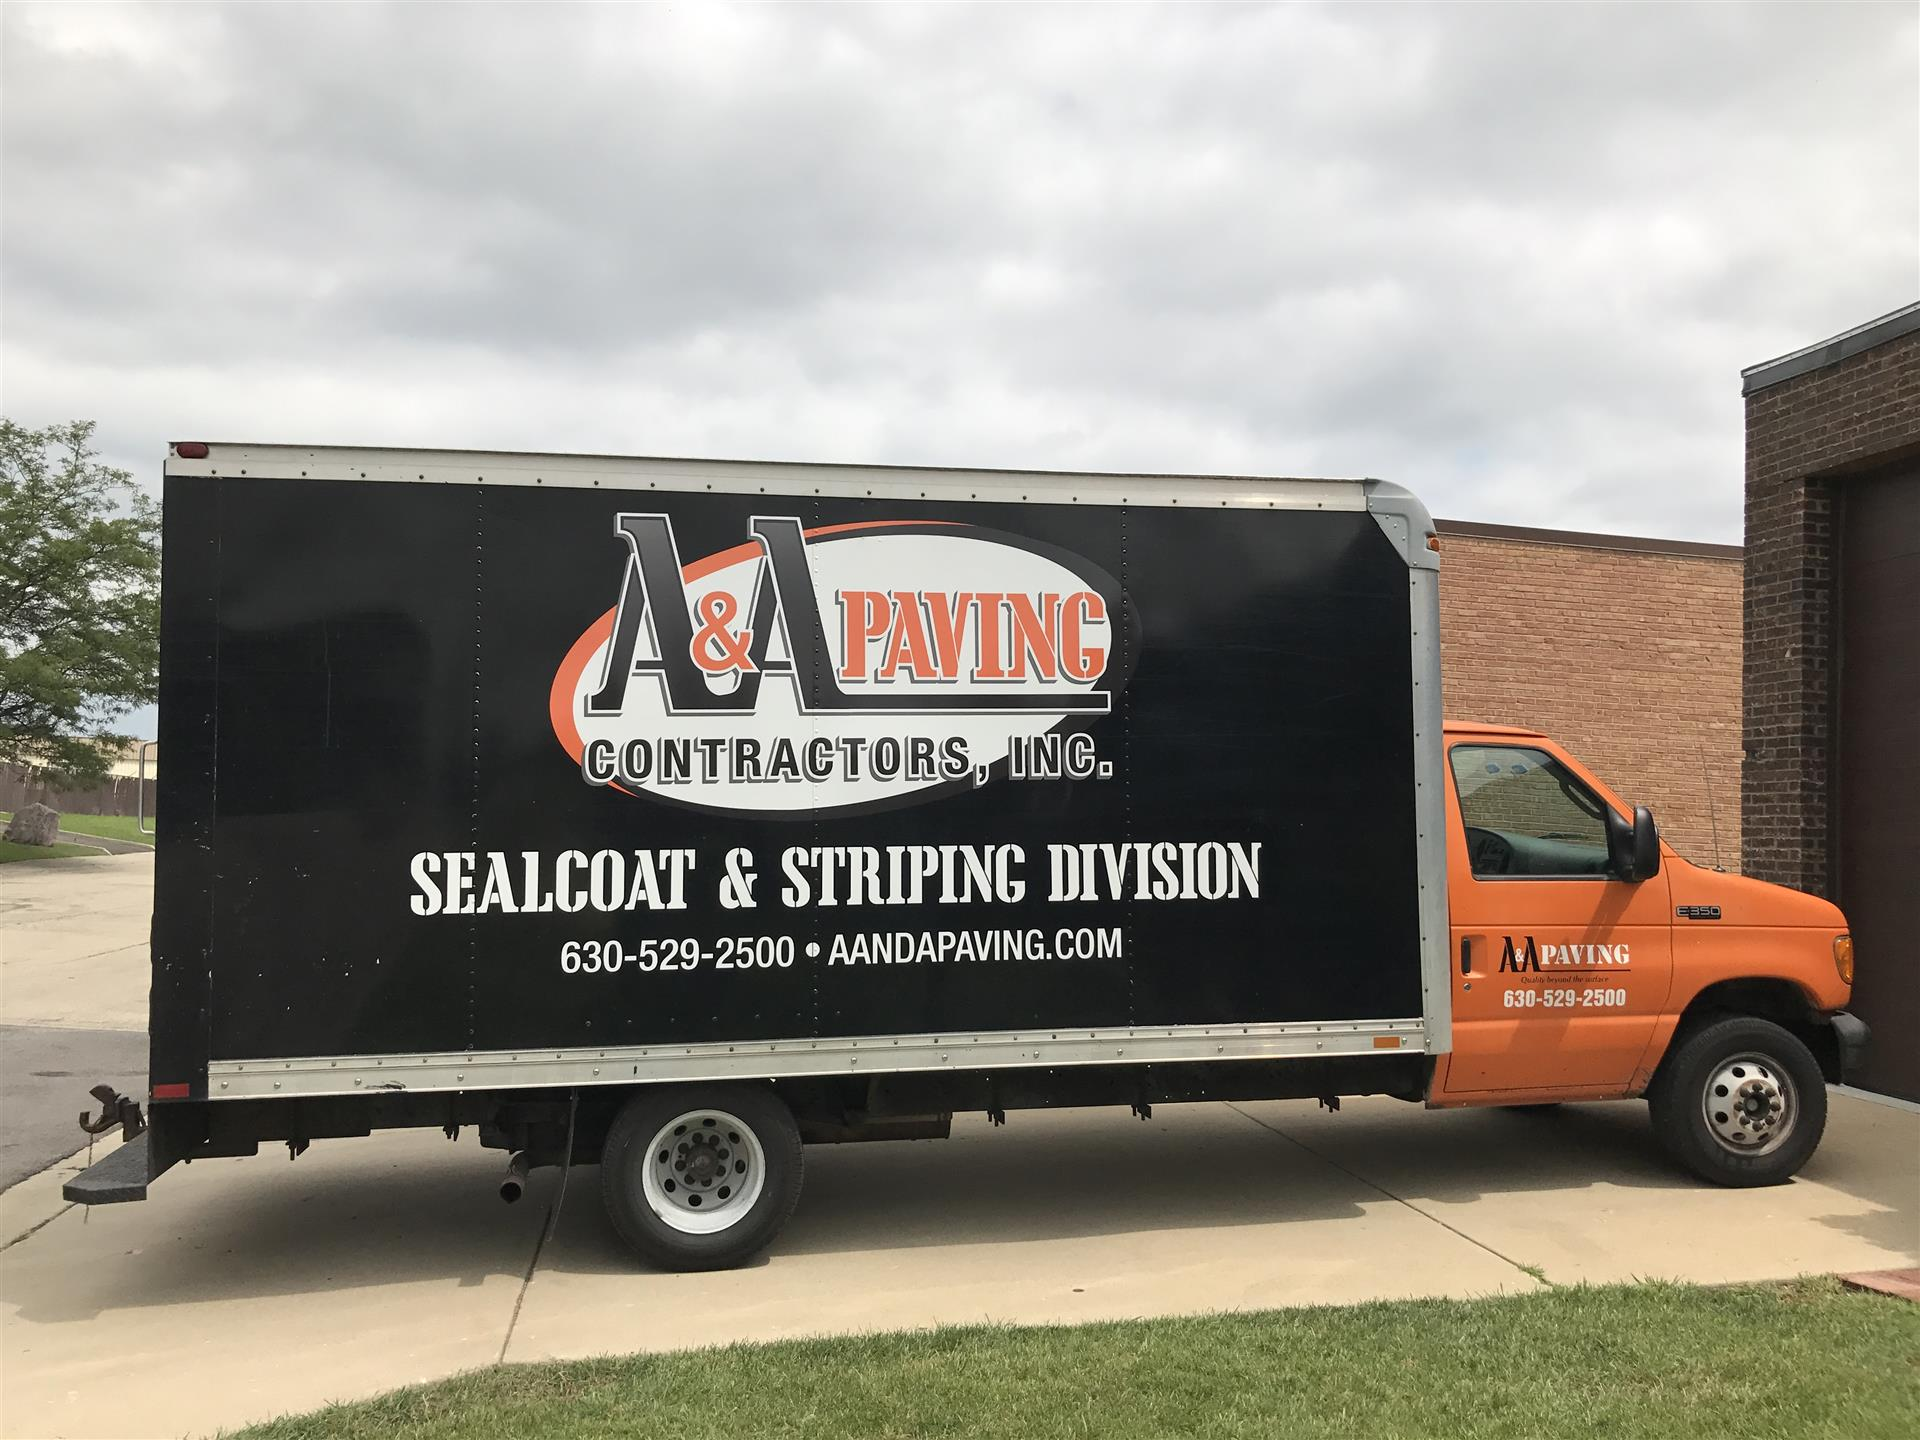 Why You Should Use Vehicle Wraps and Graphics